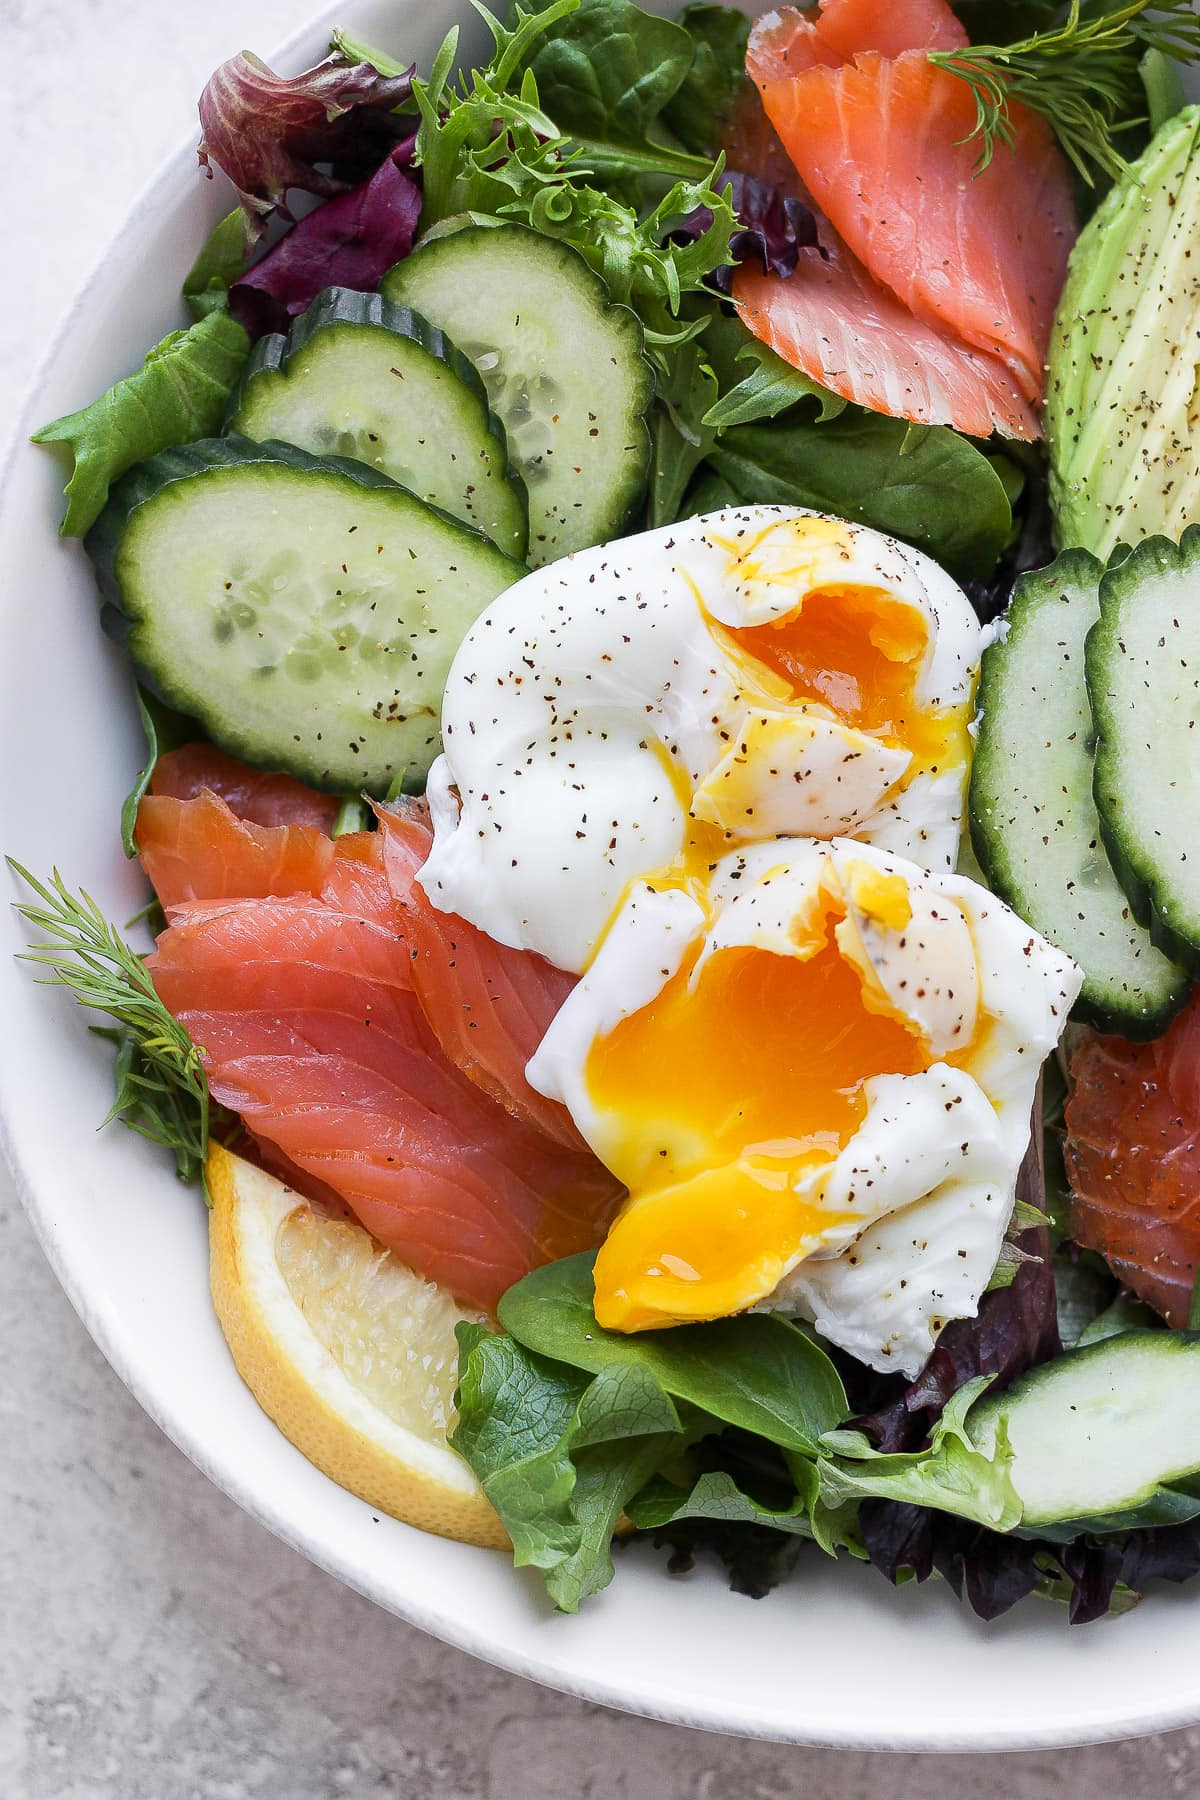 Bowl of smoked salmon salad.